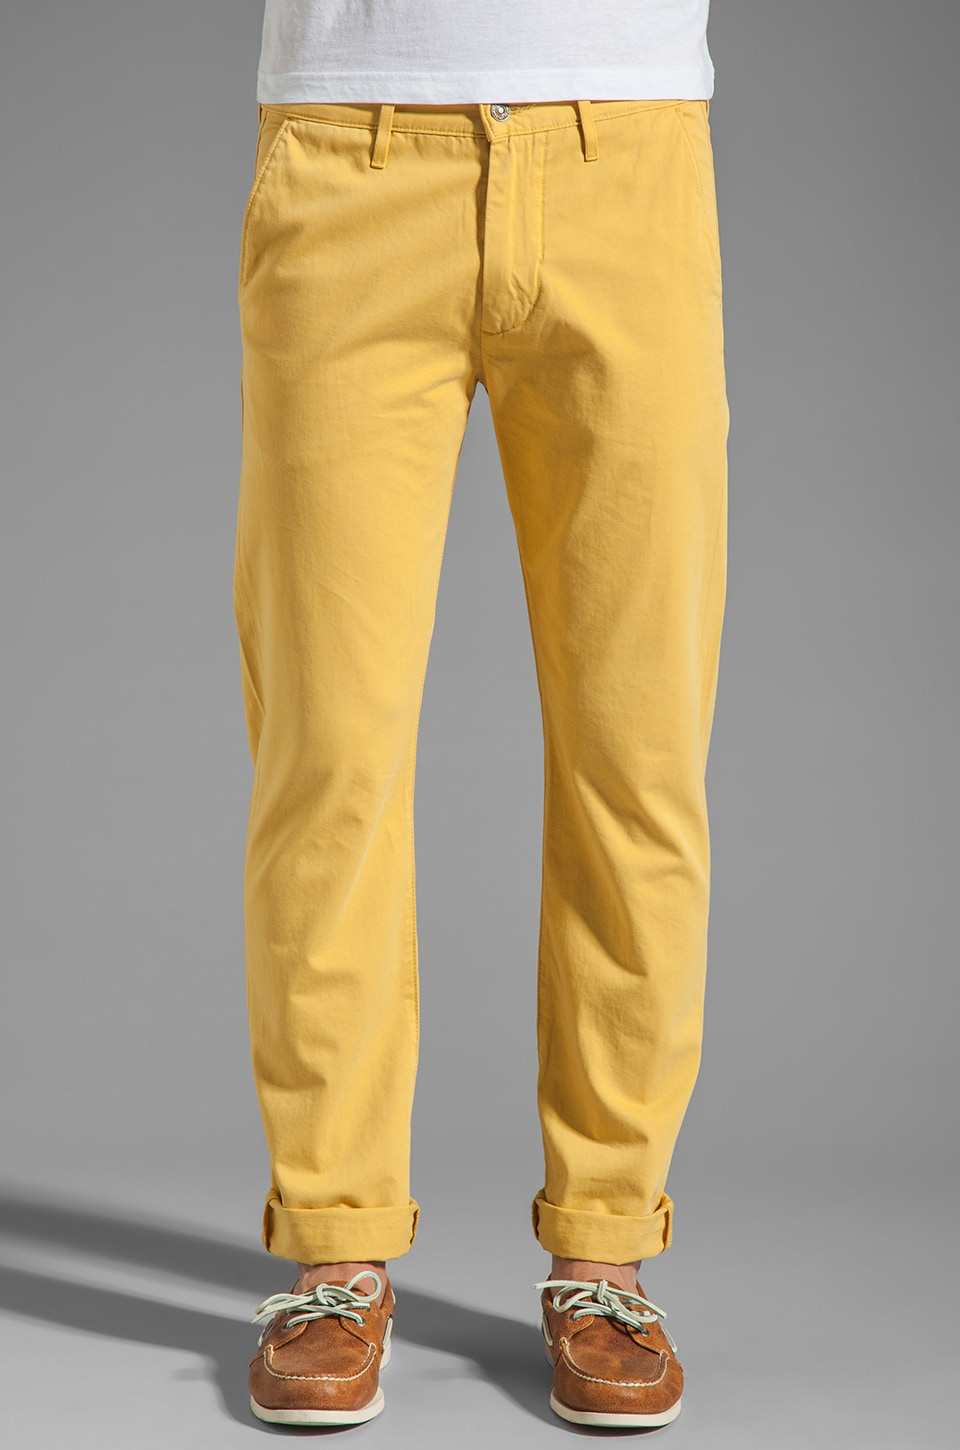 7 For All Mankind The Chino in Ochre